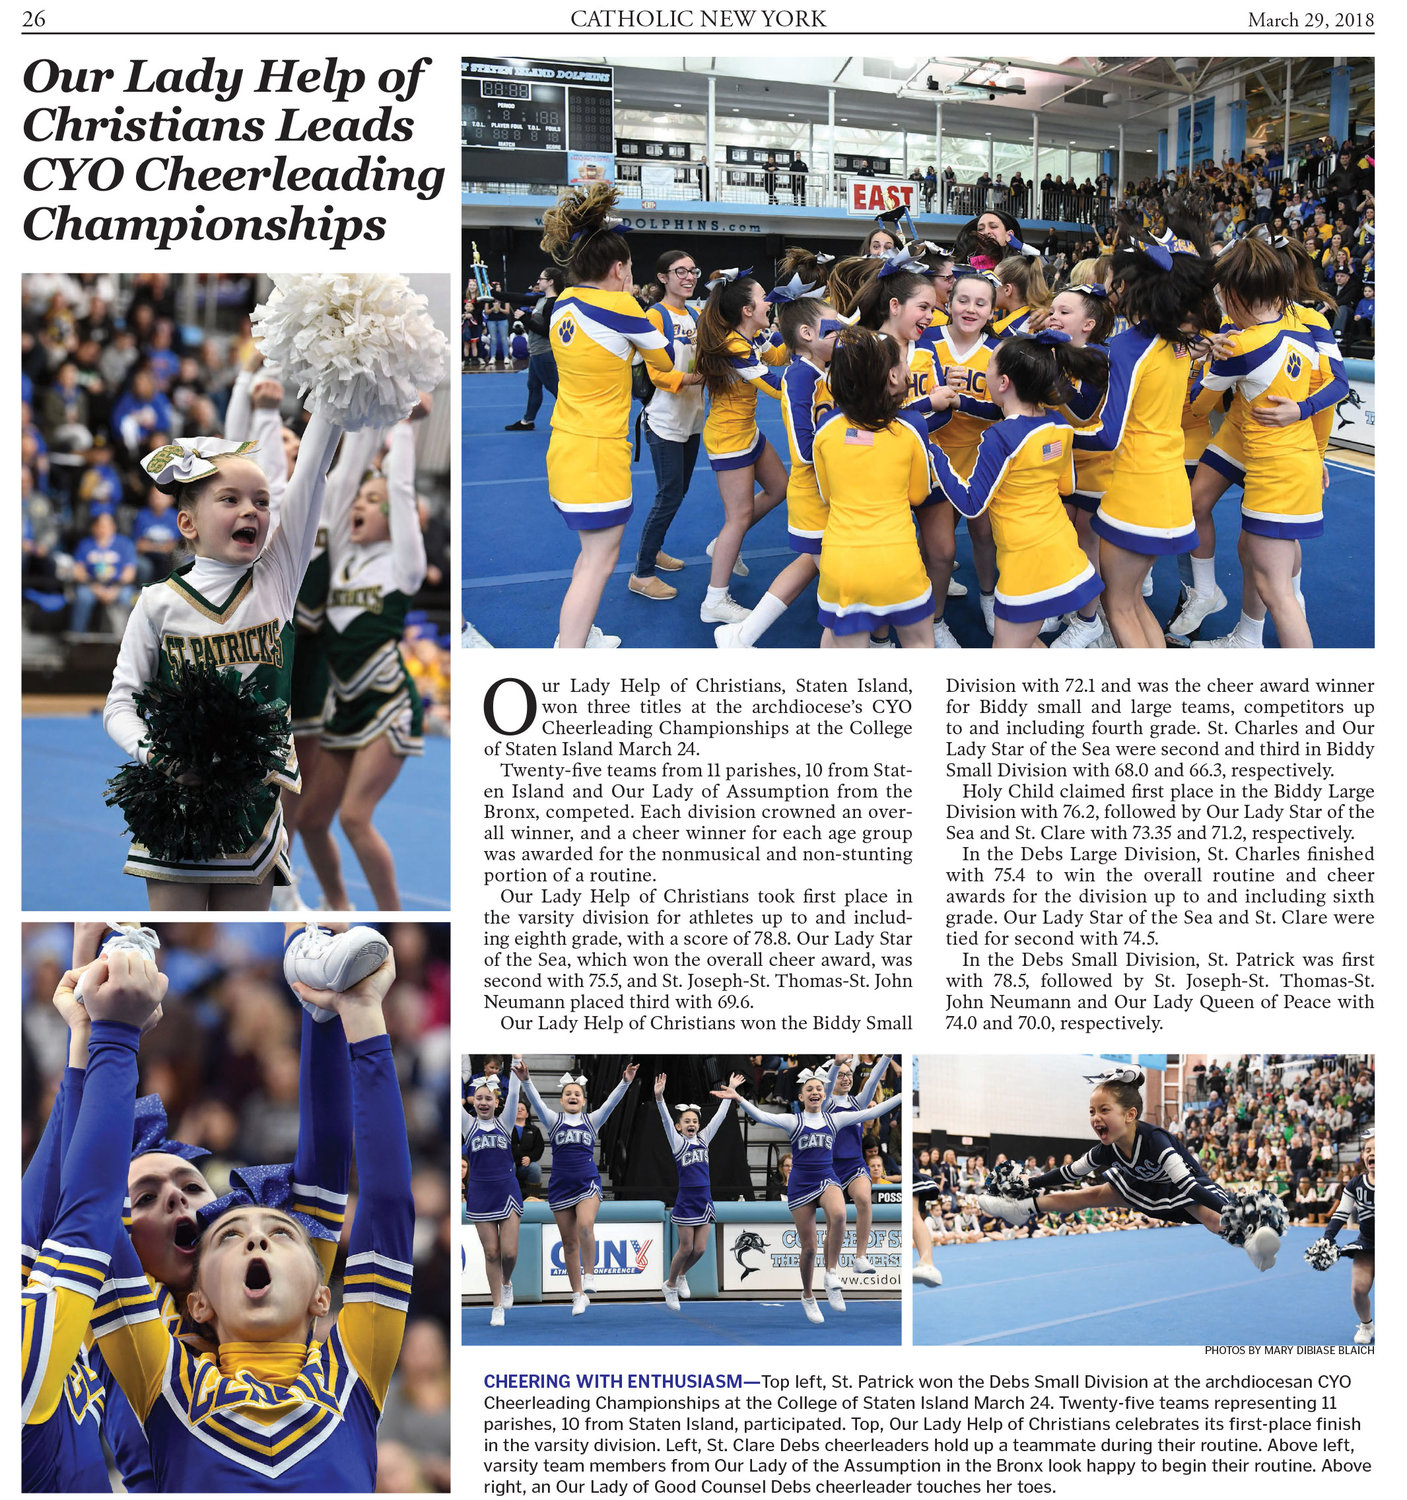 Mary DiBiase Blaich's first-place entry in the Multiple Picture Package-Sports category capturing the 2018 CYO Cheerleading Championships.